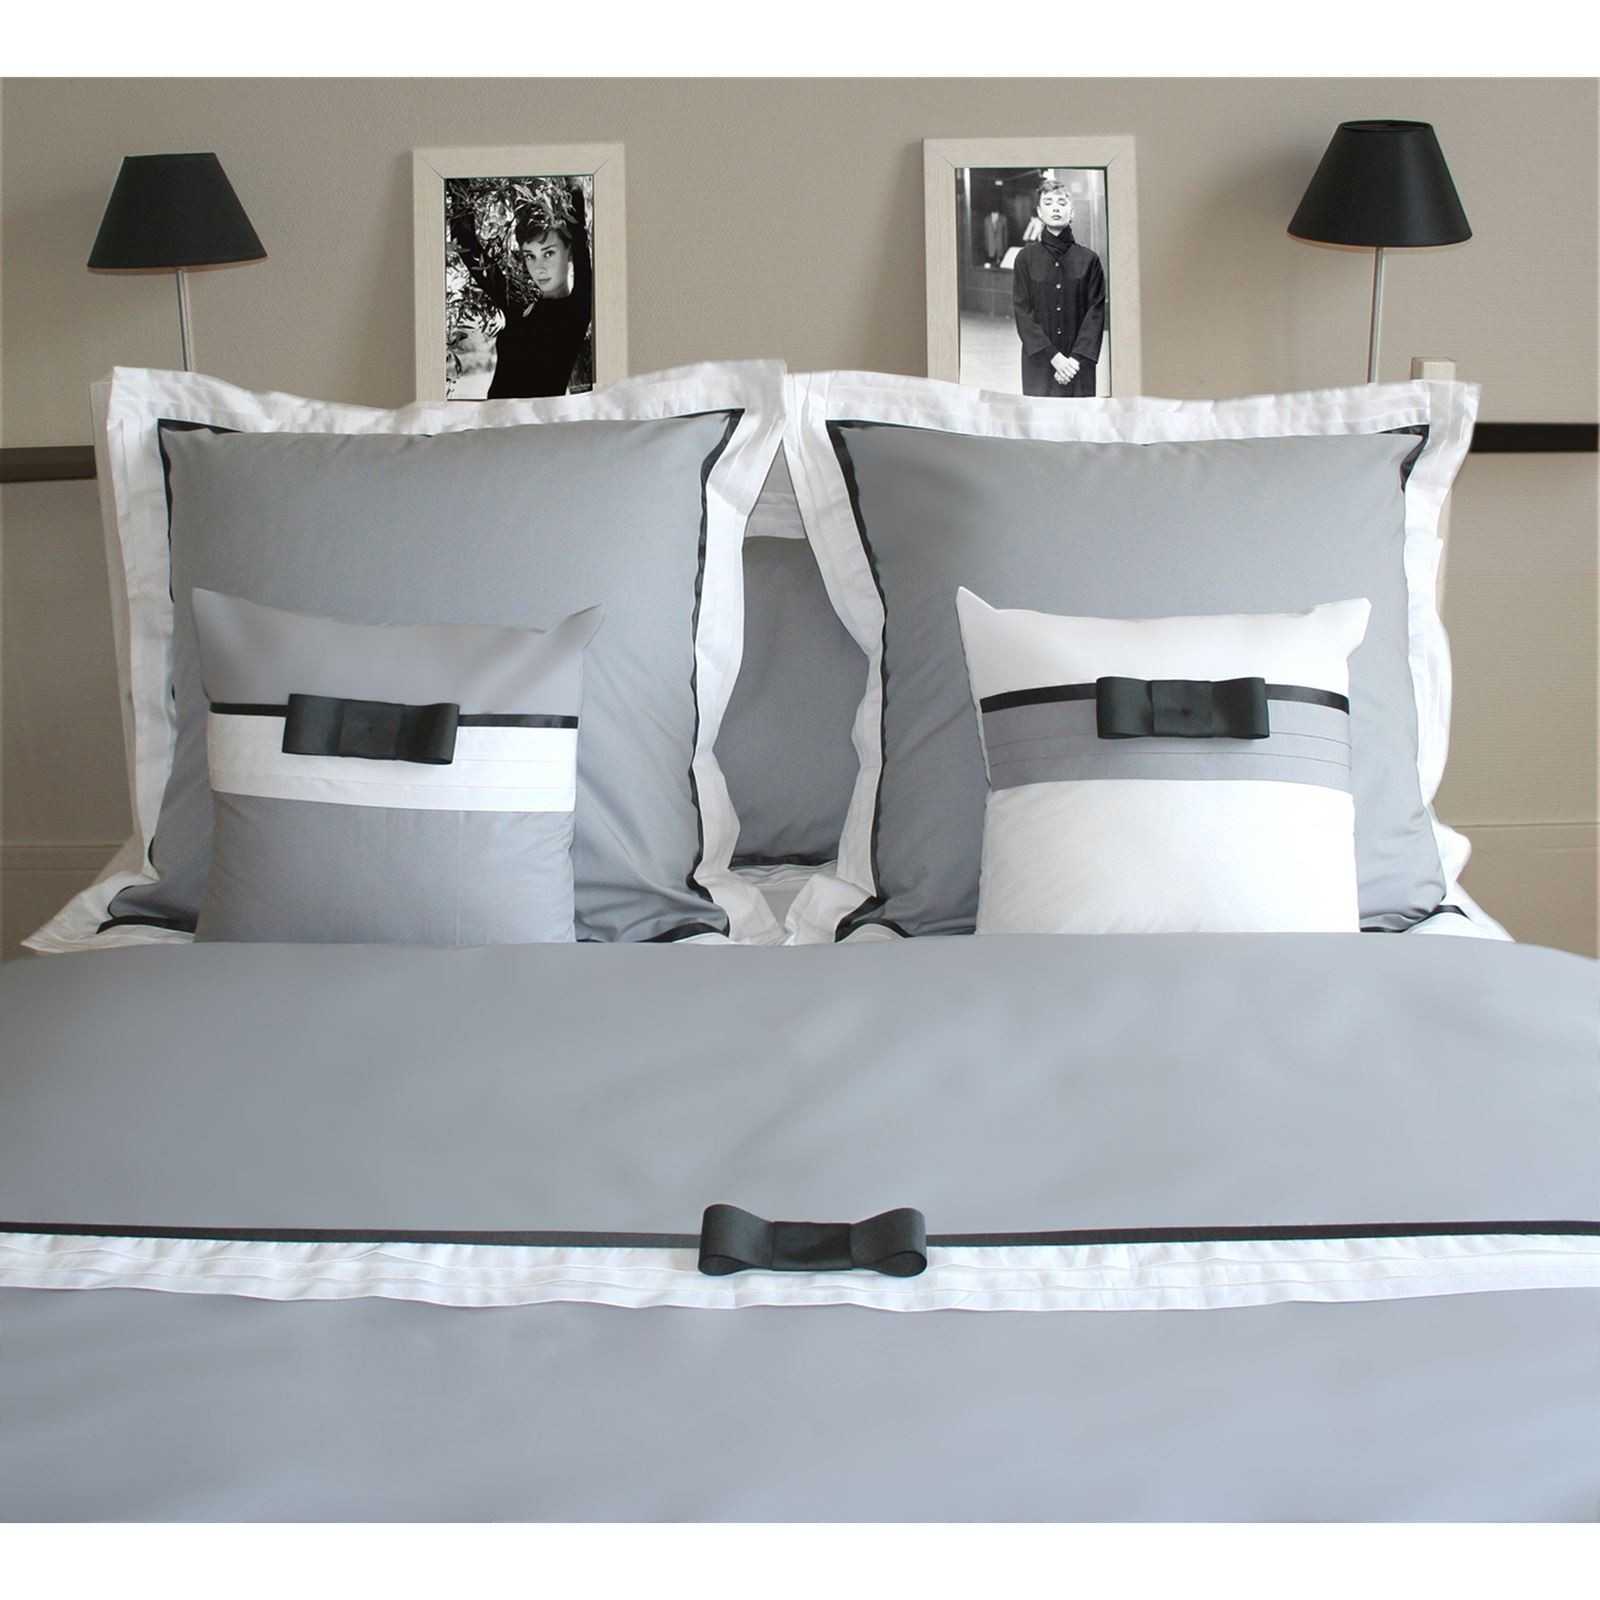 liou audrey h housse de couette gris argent blanc. Black Bedroom Furniture Sets. Home Design Ideas